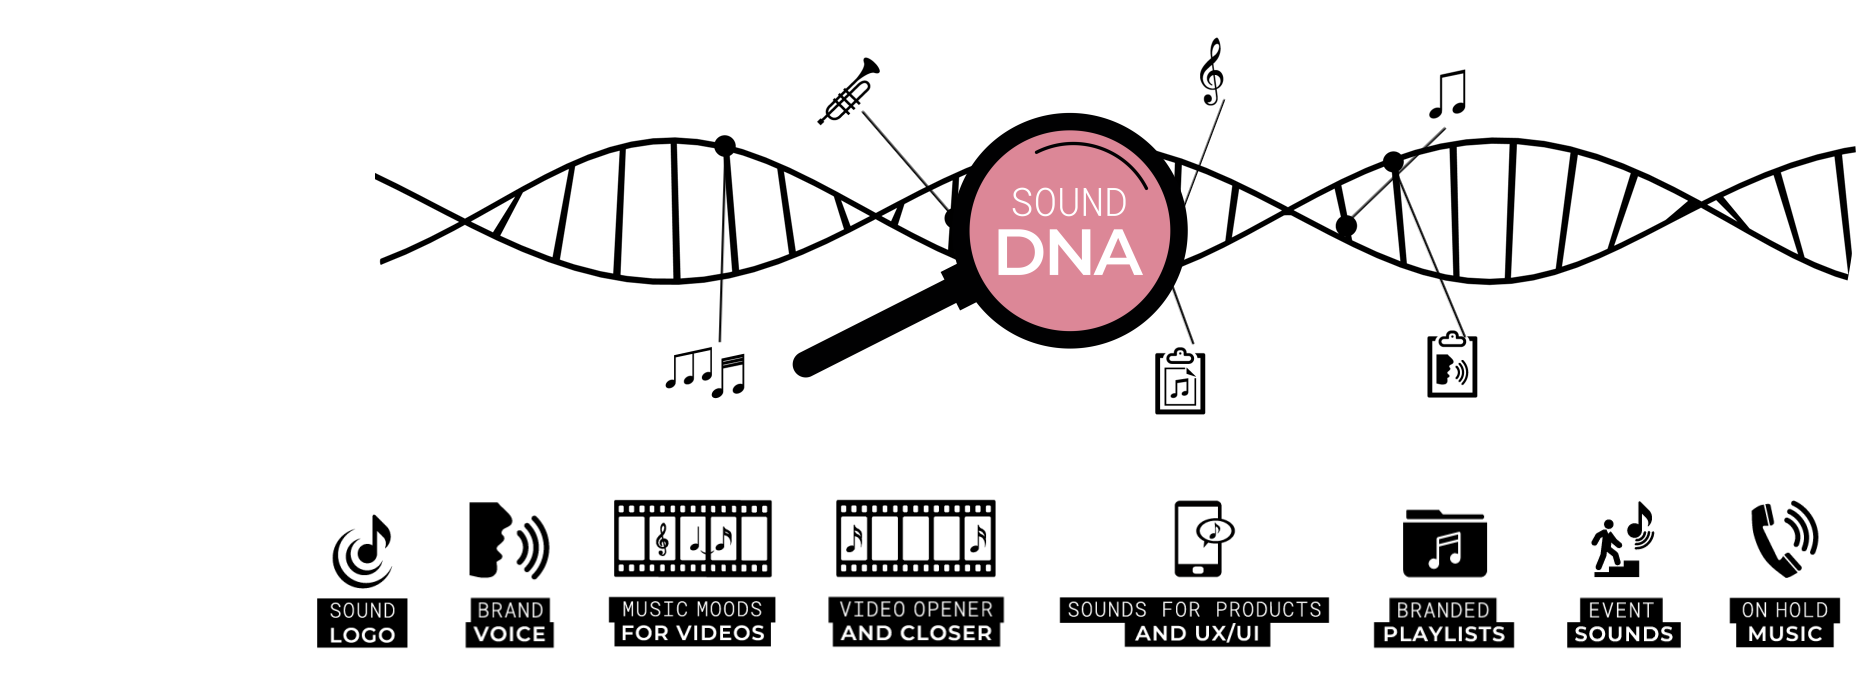 ...to the sound elements... - Once the Sound DNA is created, elements of the Sound Identity are derived to create an immersive and recognizable customer journey.